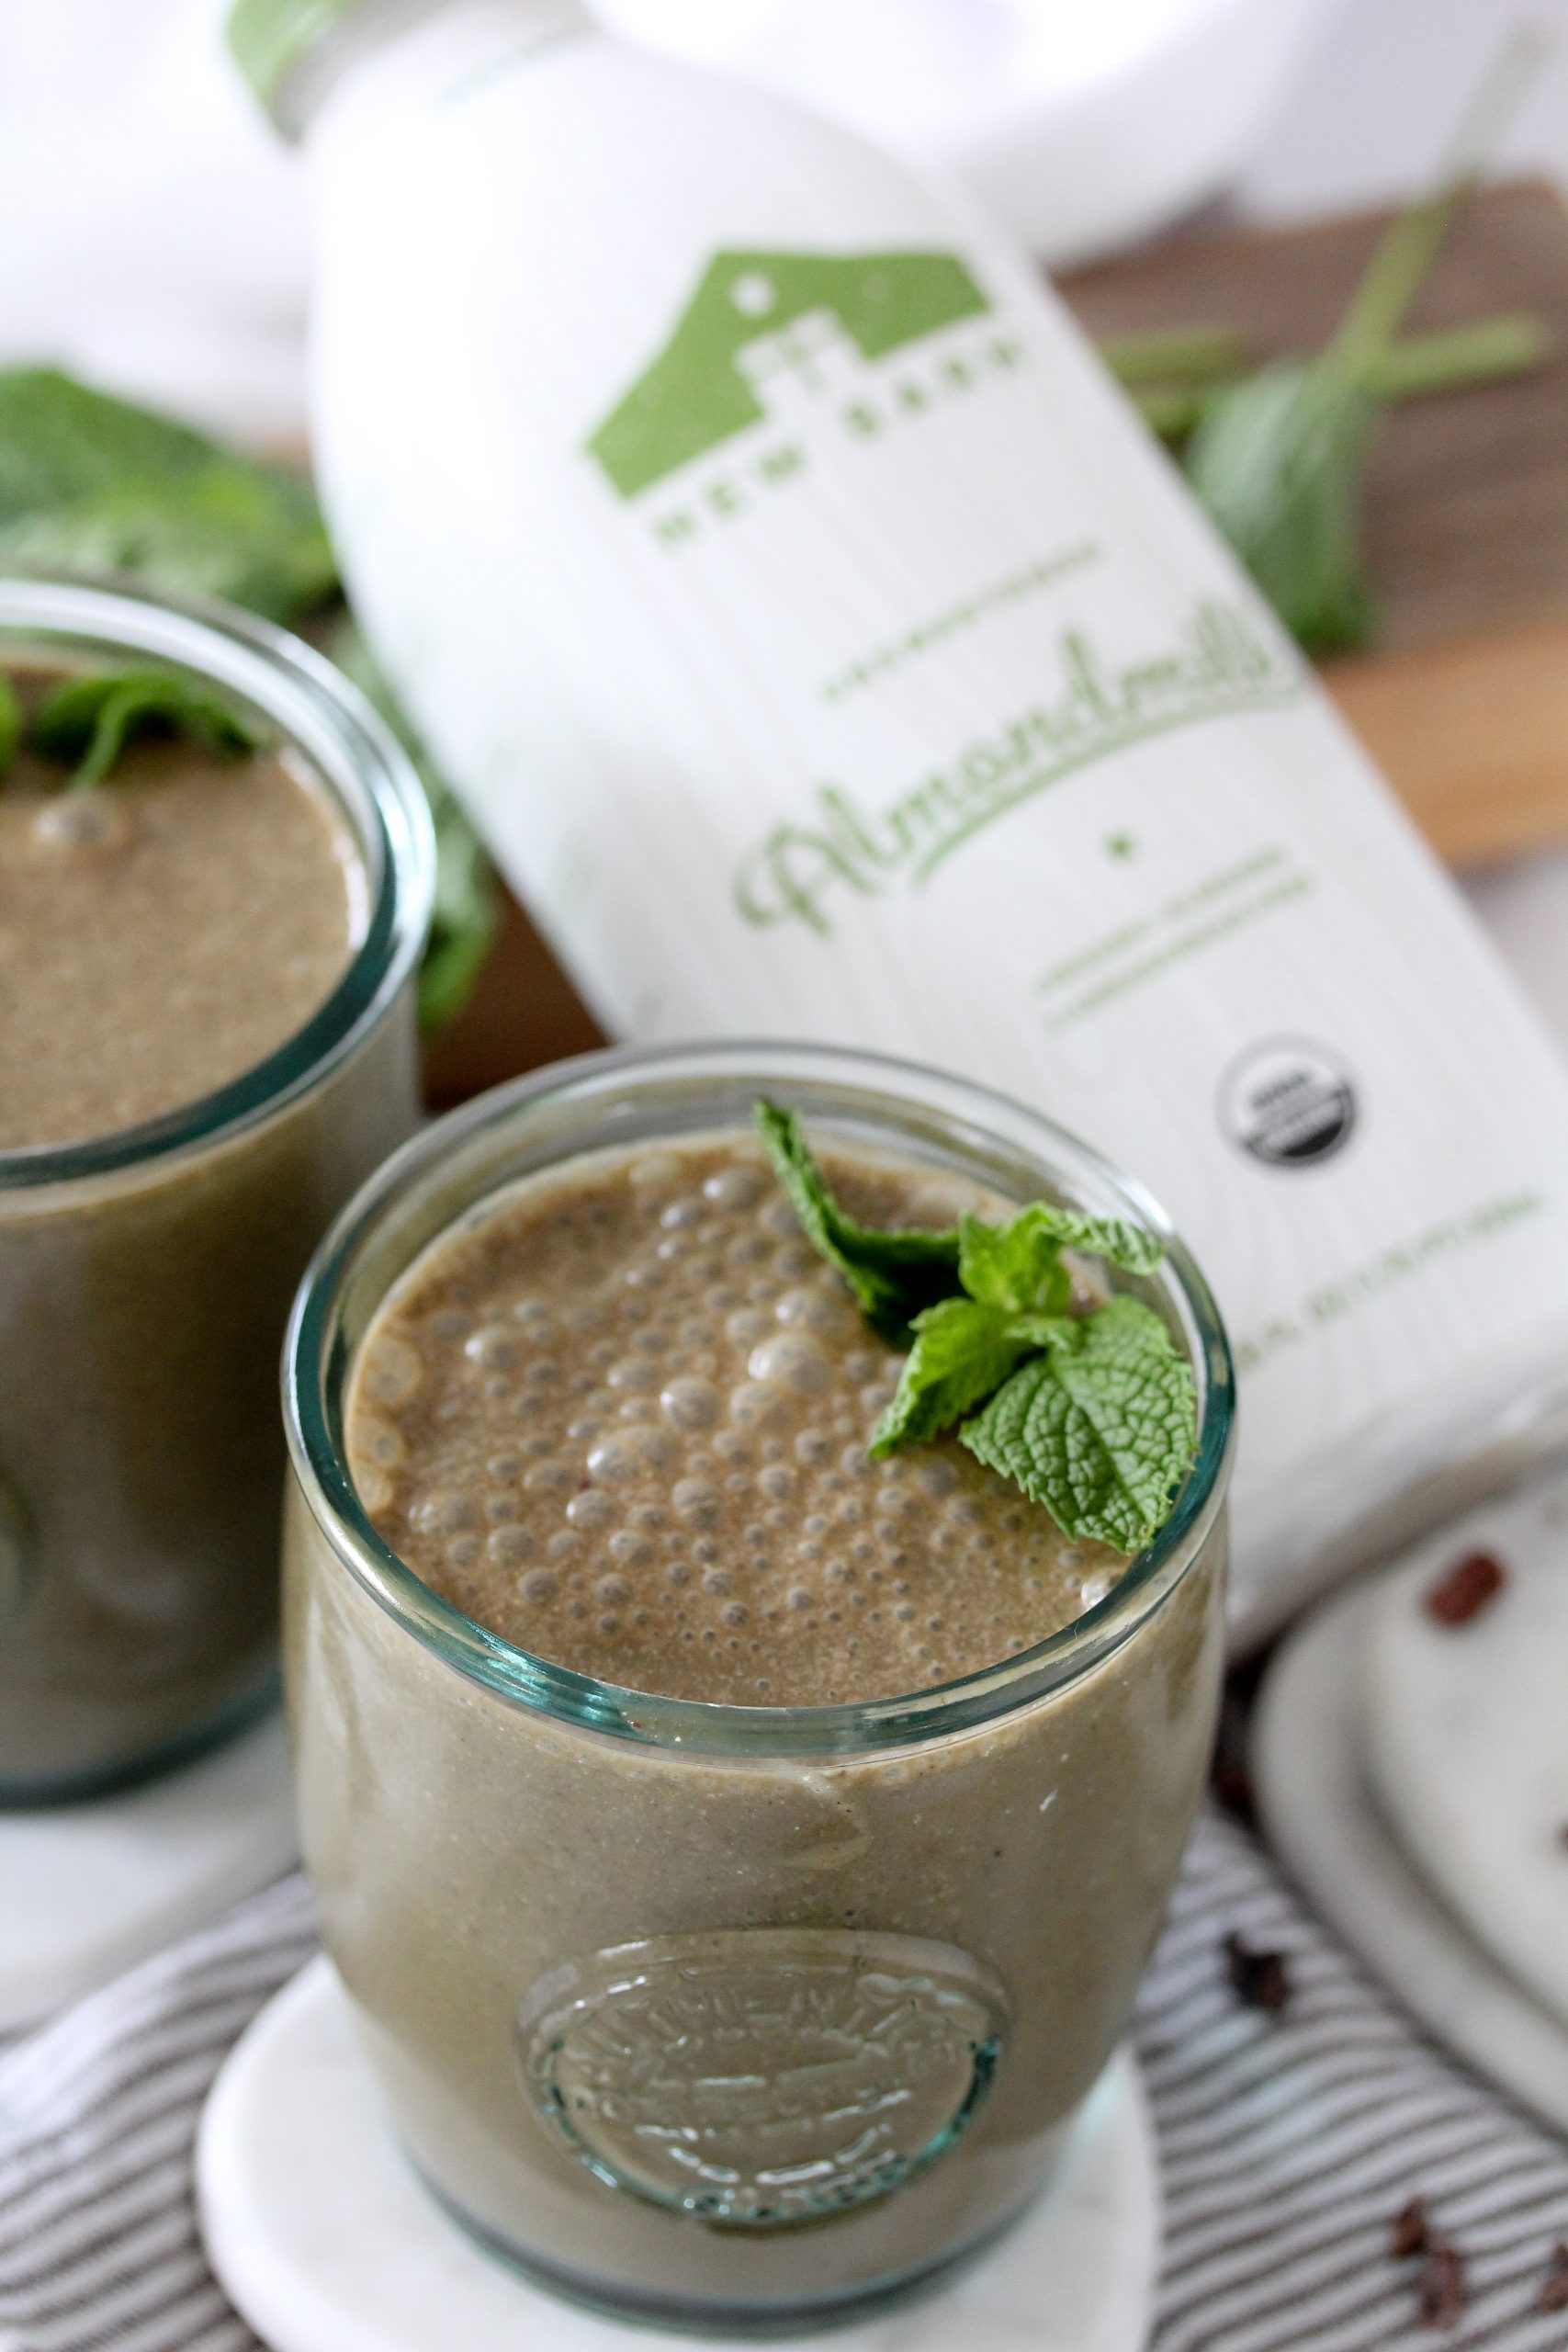 No-Sugar-Added Chocolate Mint Superfood Smoothie from the Whole Smiths. A refreshing, superfood packed smoothie recipe that's the perfect afternoon pick-me-up. It's SO tasty and refreshing. Paleo, vegan and vegetarian.